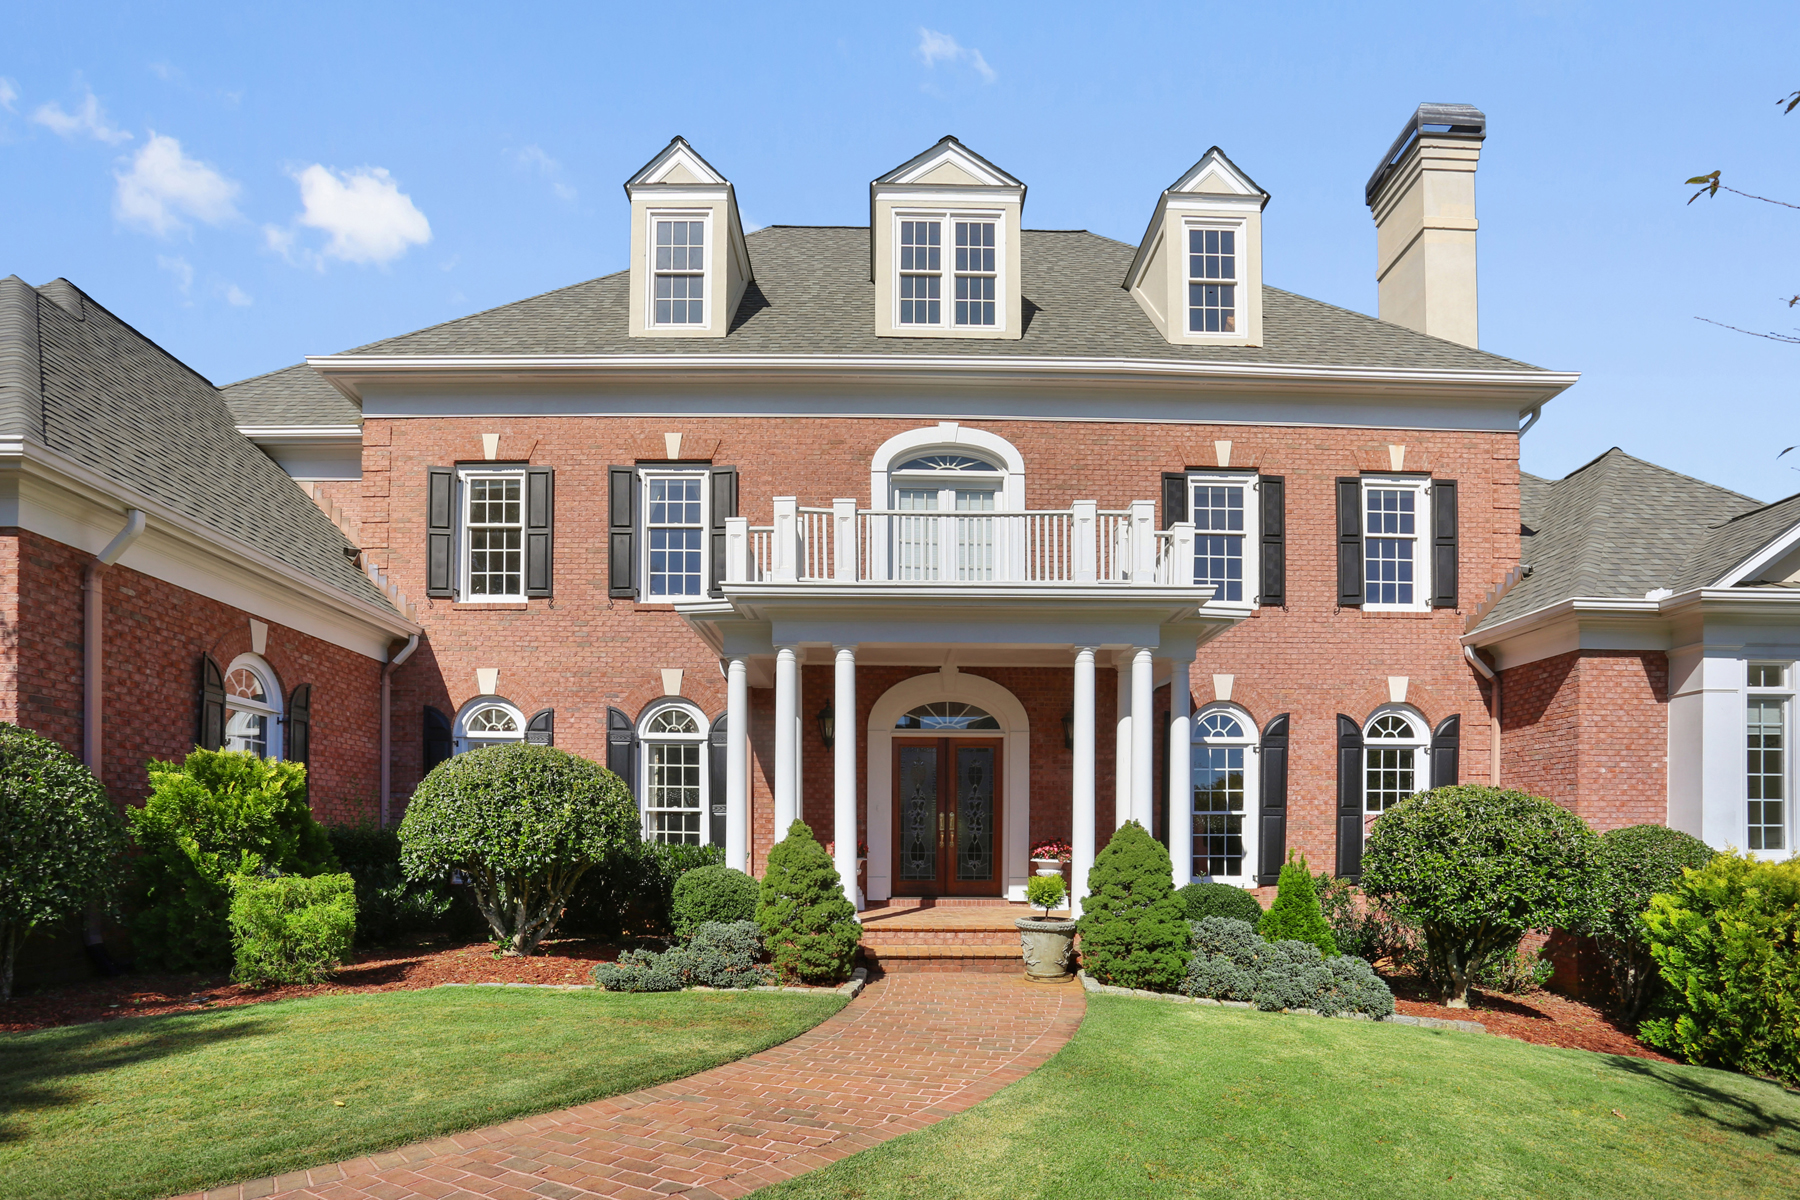 Single Family Homes for Active at Exceptional Country Club Of The South Estate Home 1021 Cherbury Lane Johns Creek, Georgia 30022 United States